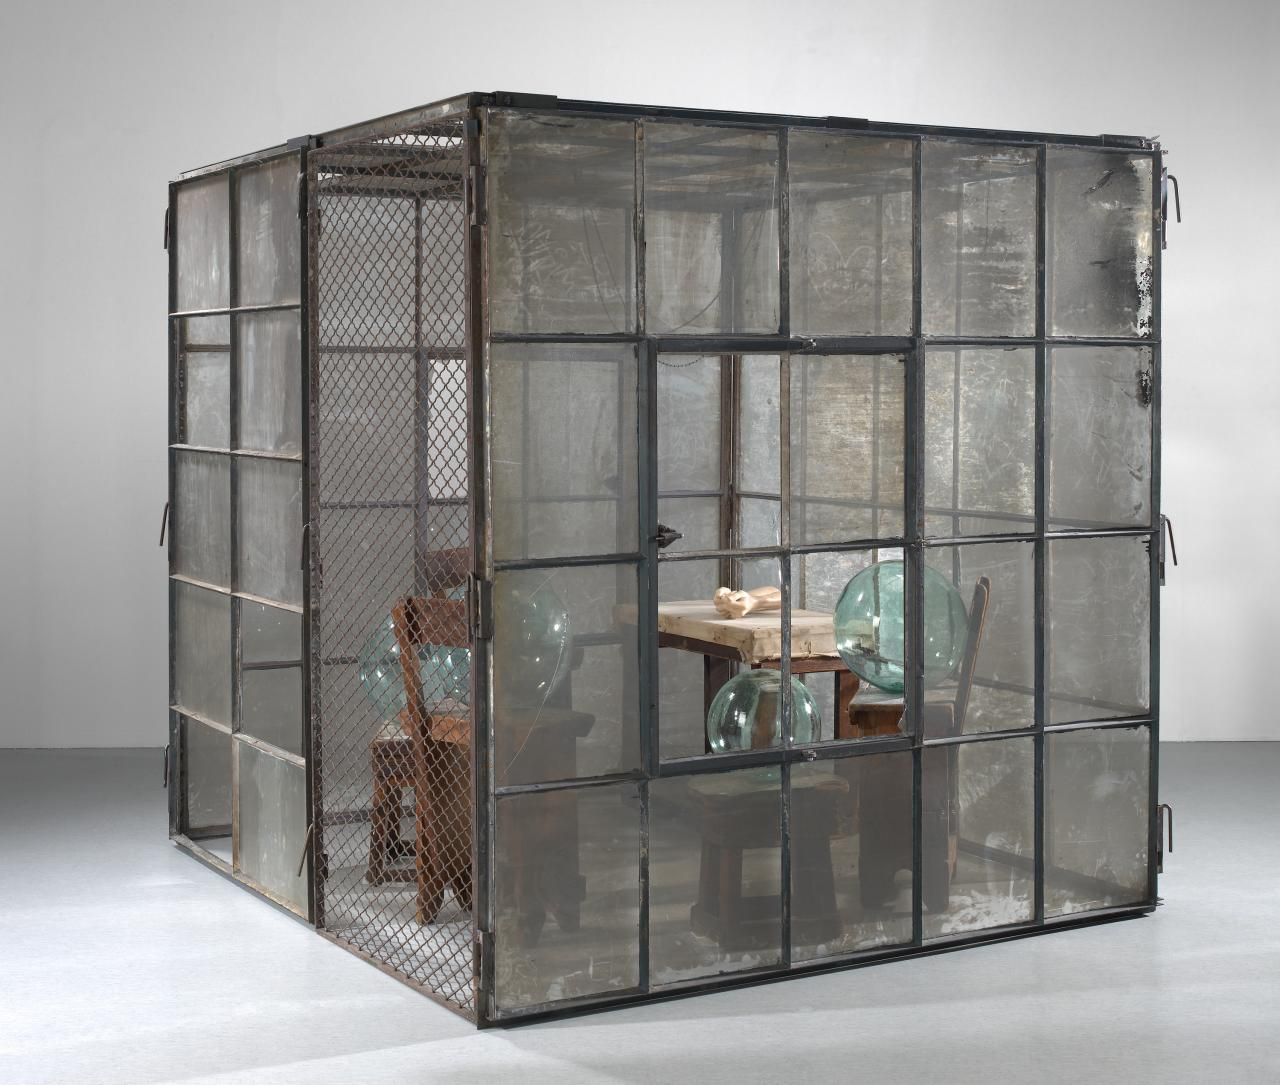 Louise BOURGEOIS Cell (Glass spheres and hands) (1990-1993)